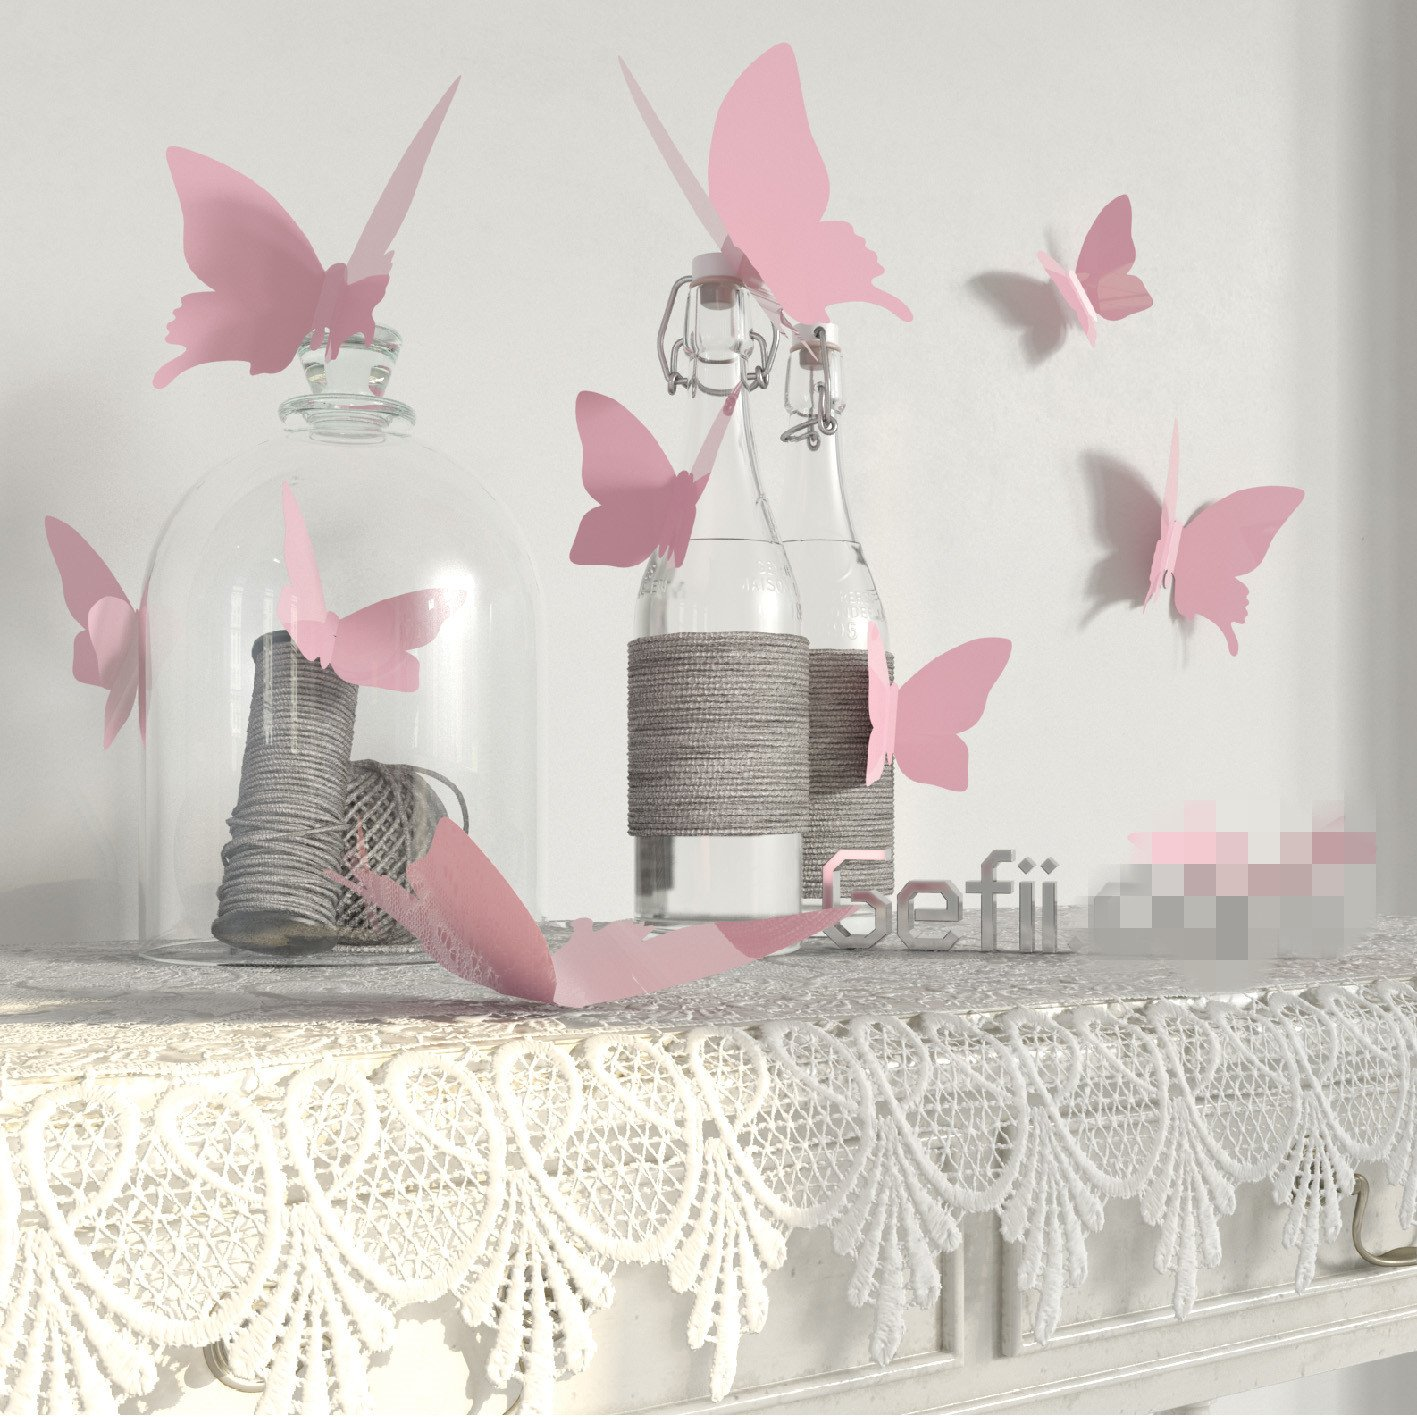 Amazon mariposa appear in gossip girl 12pcspack 3d amazon mariposa appear in gossip girl 12pcspack 3d decorative butterflies removable wall art stickers wedding decor by gefii amipublicfo Gallery